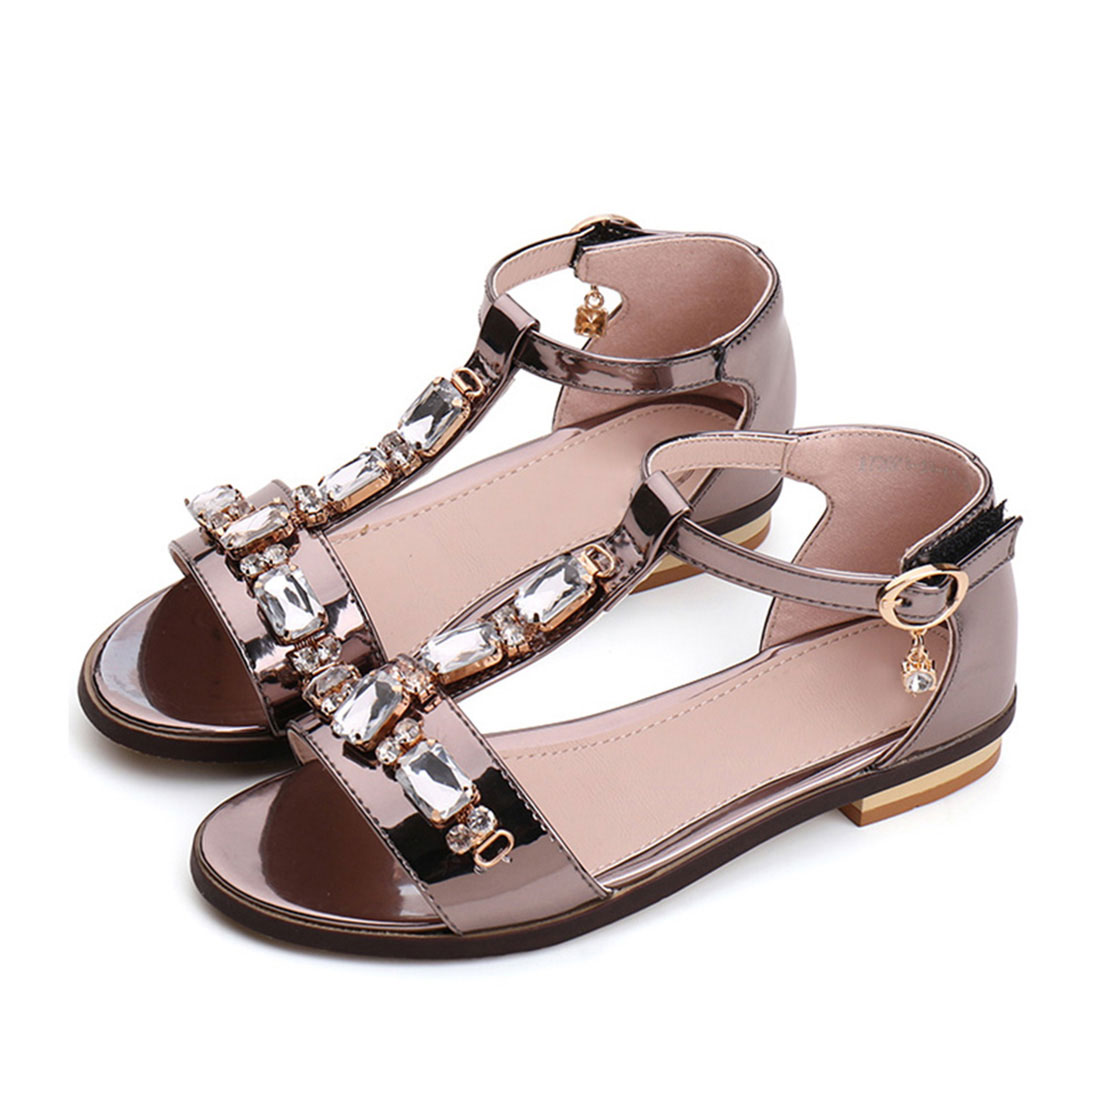 Design for girls brown diamond sandals sexy image luxury baby shoes CS2097